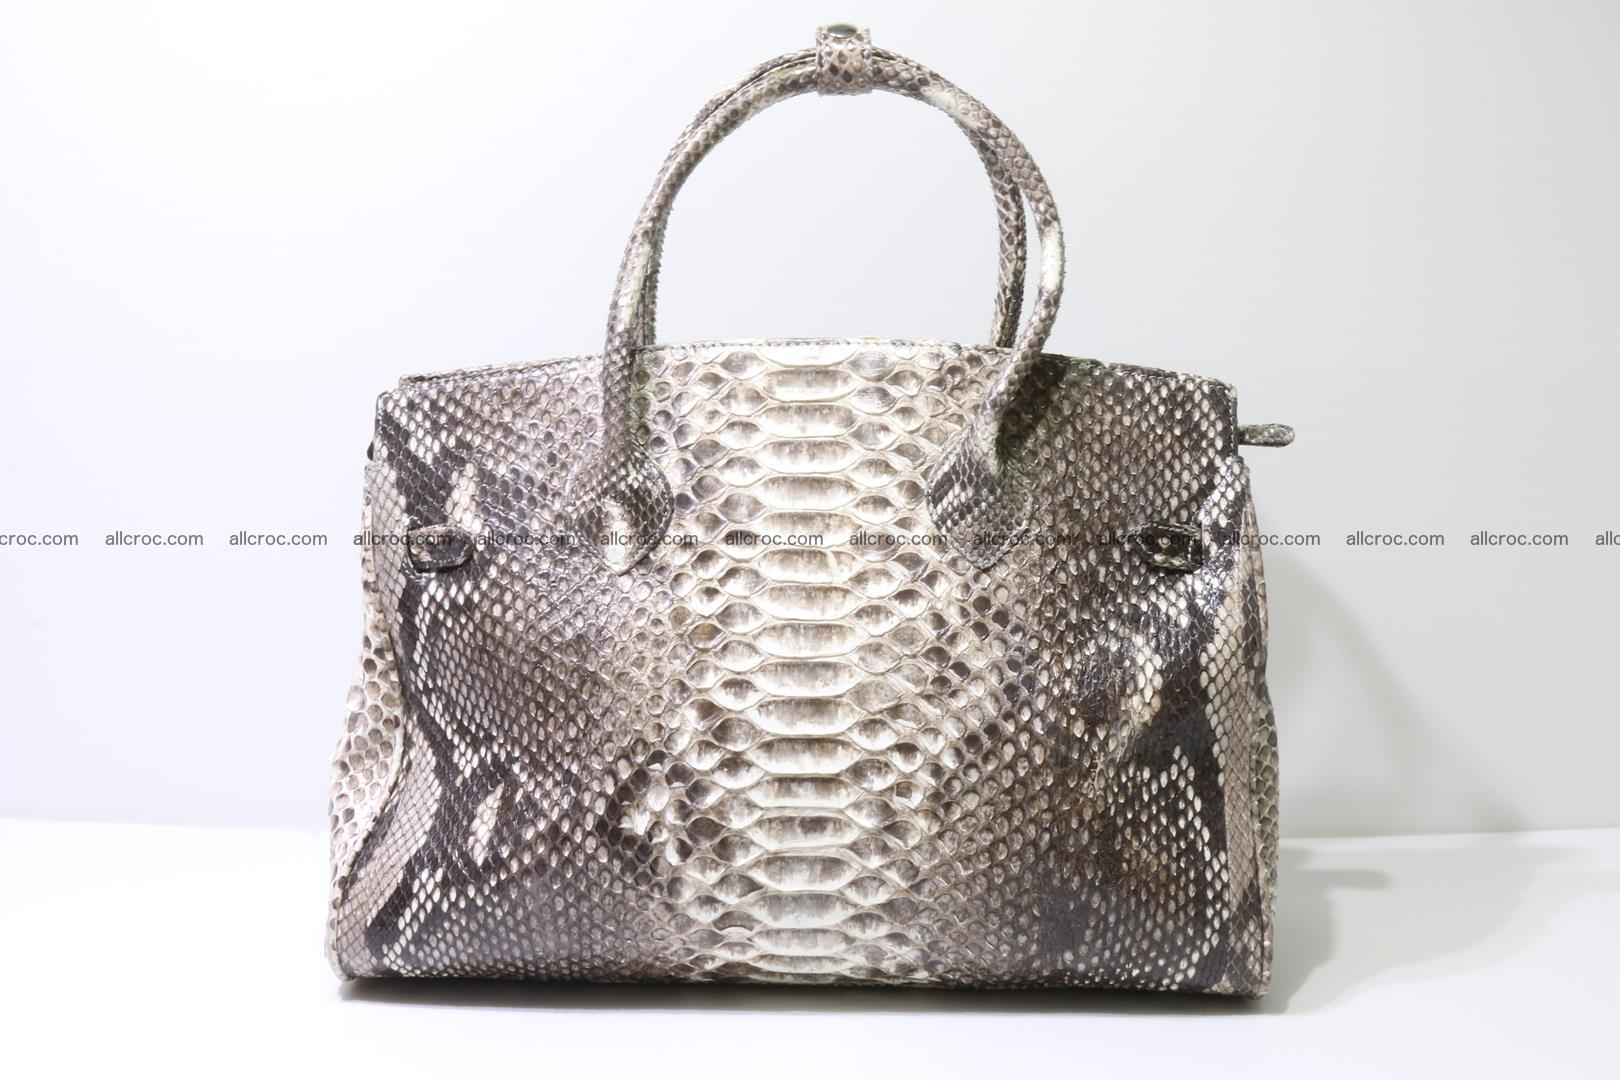 Python skin women's handbag replica of Birkin 211 Foto 4